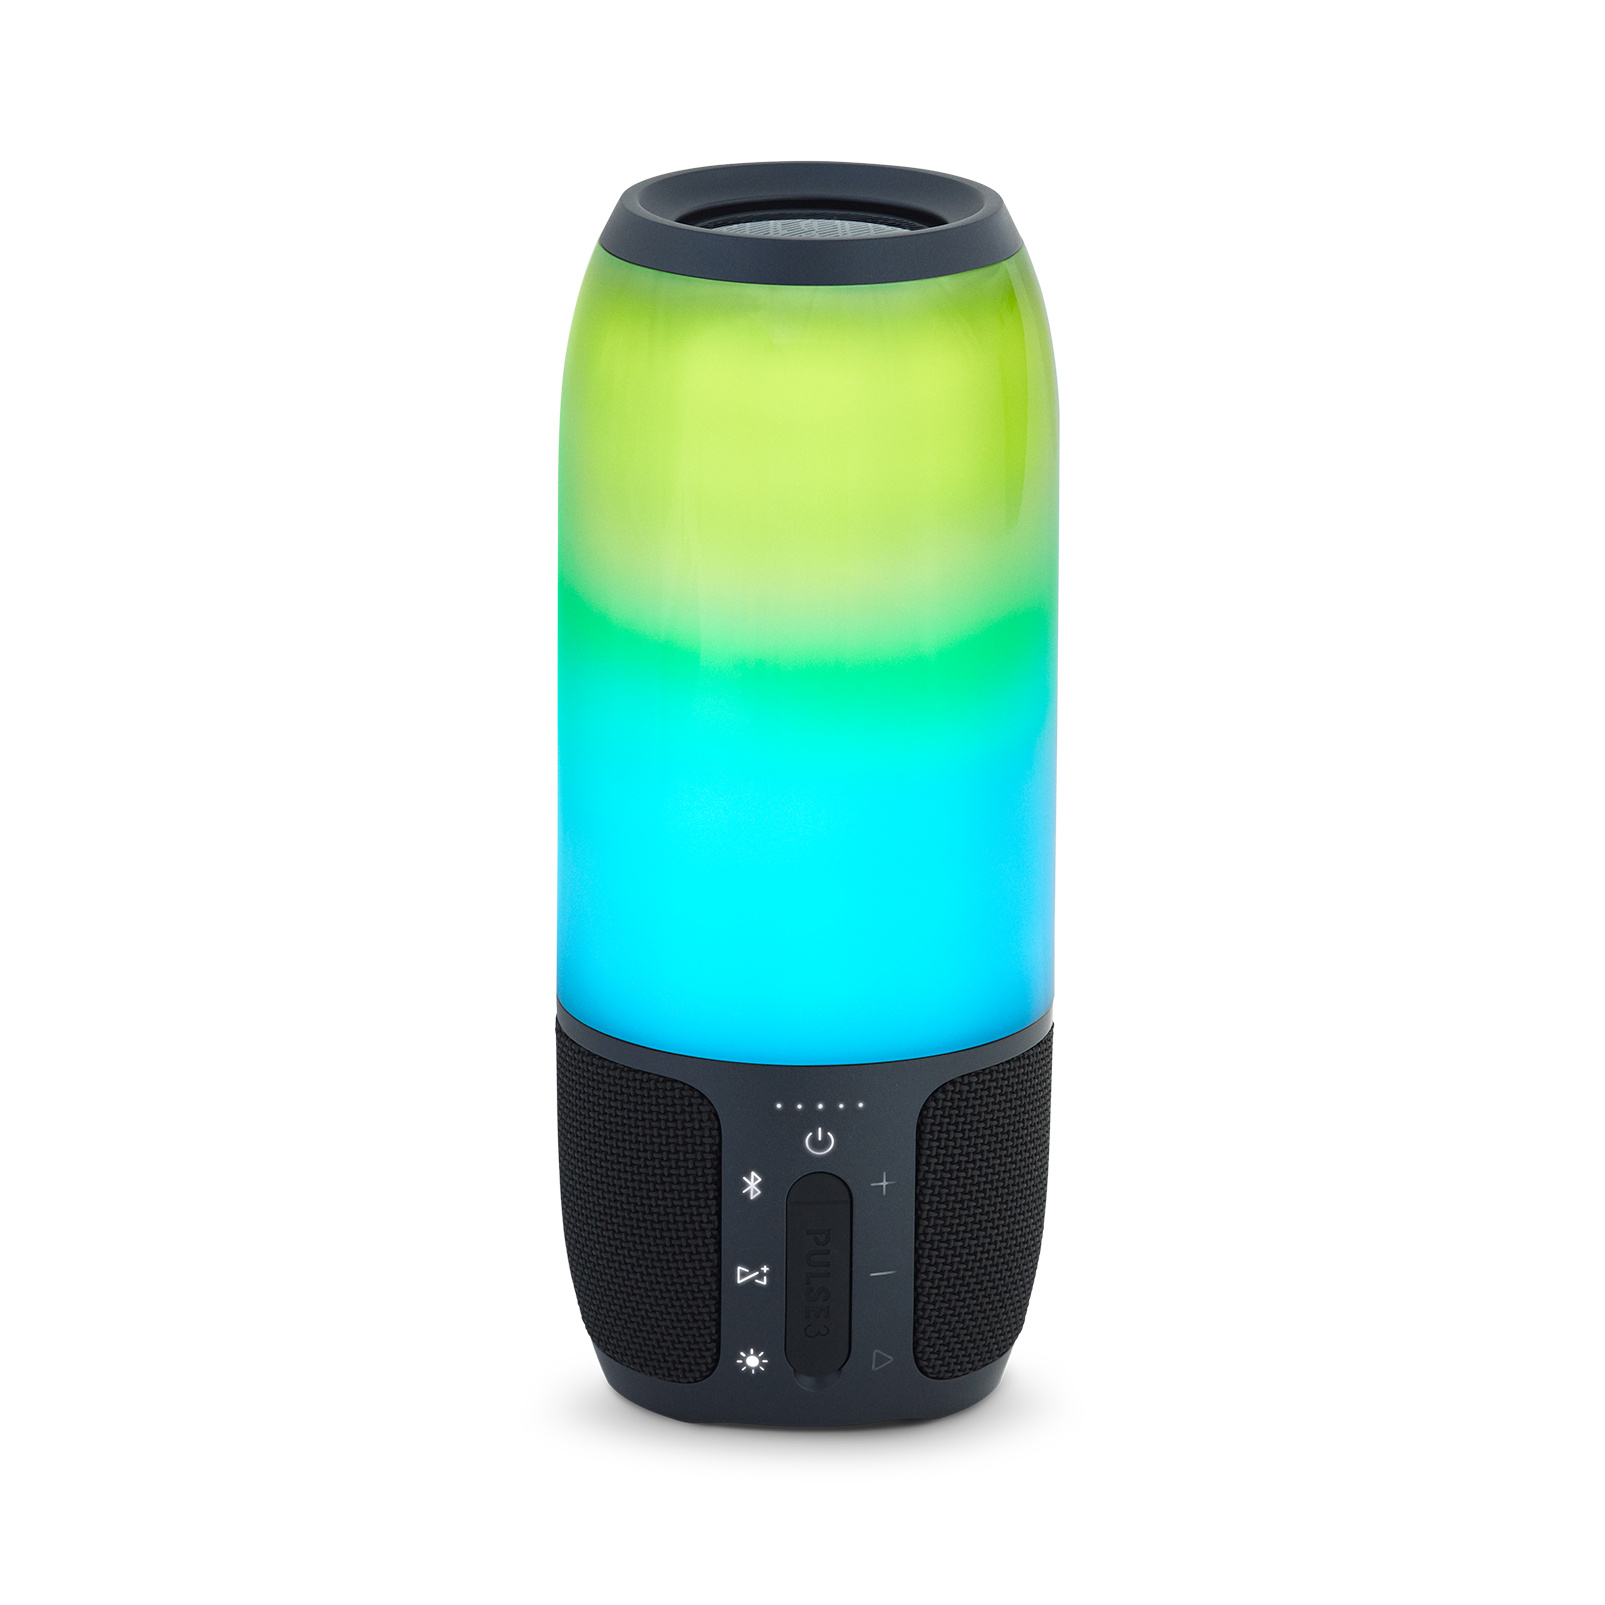 Pulse 3 - Black - Waterproof portable Bluetooth speaker with 360° lightshow and sound. - Back